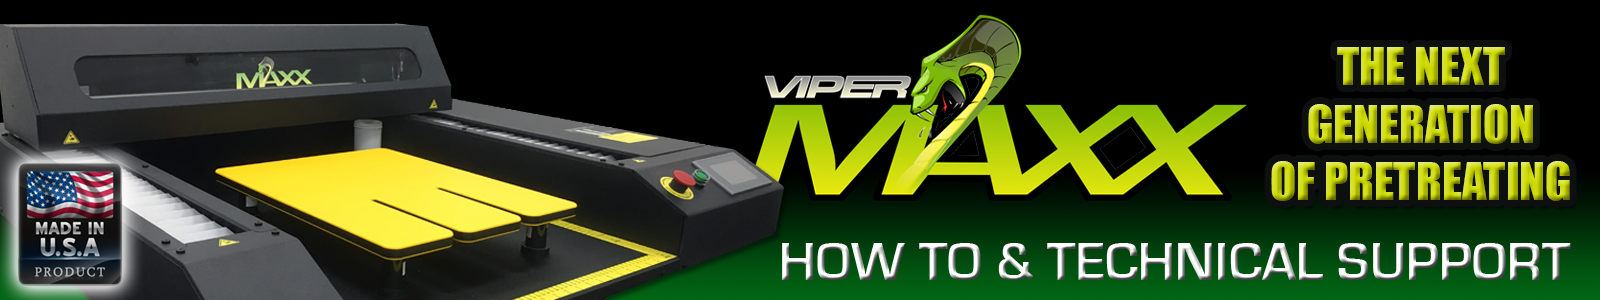 Viper MAXX TECHNICAL SUPPORT